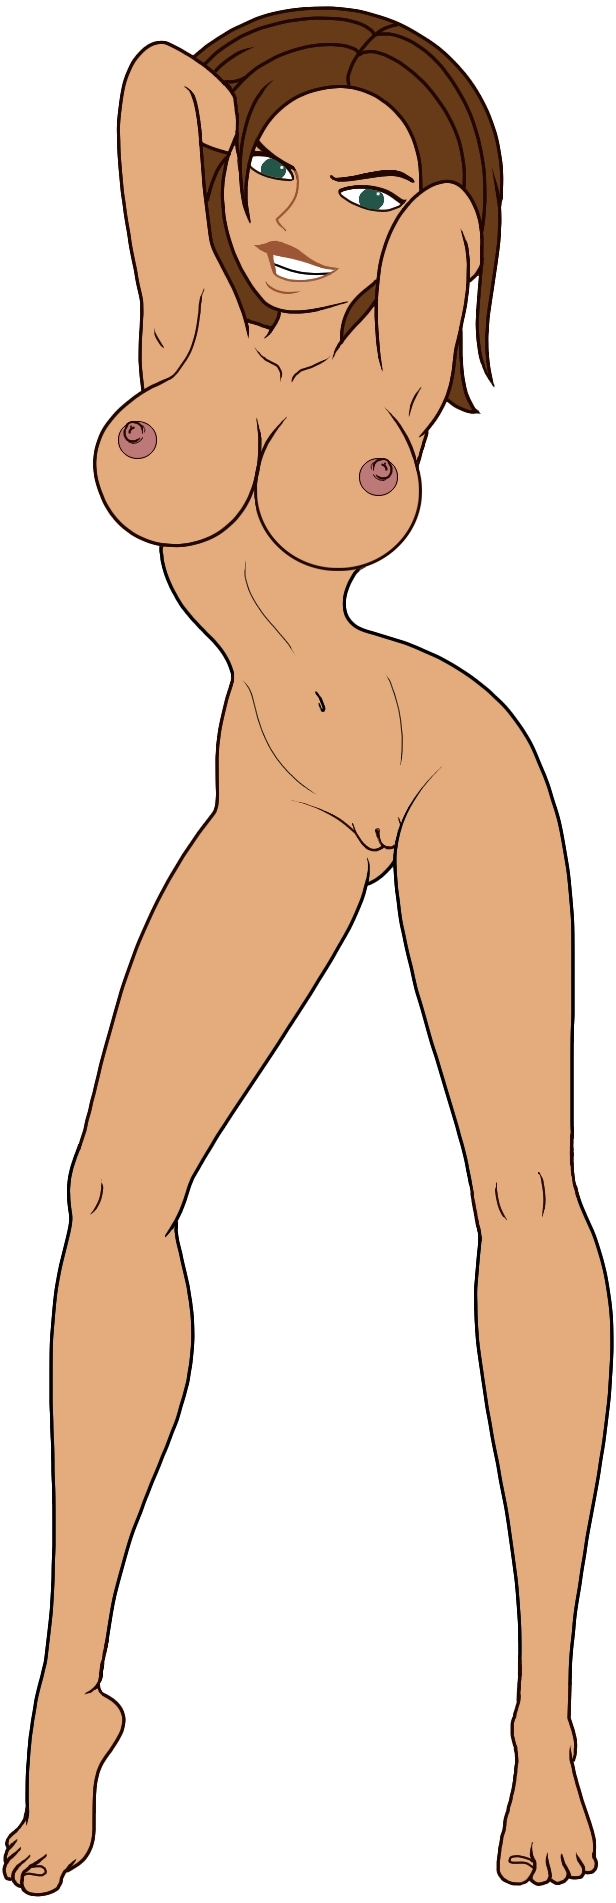 Kim Possible Cartoon Naked Images